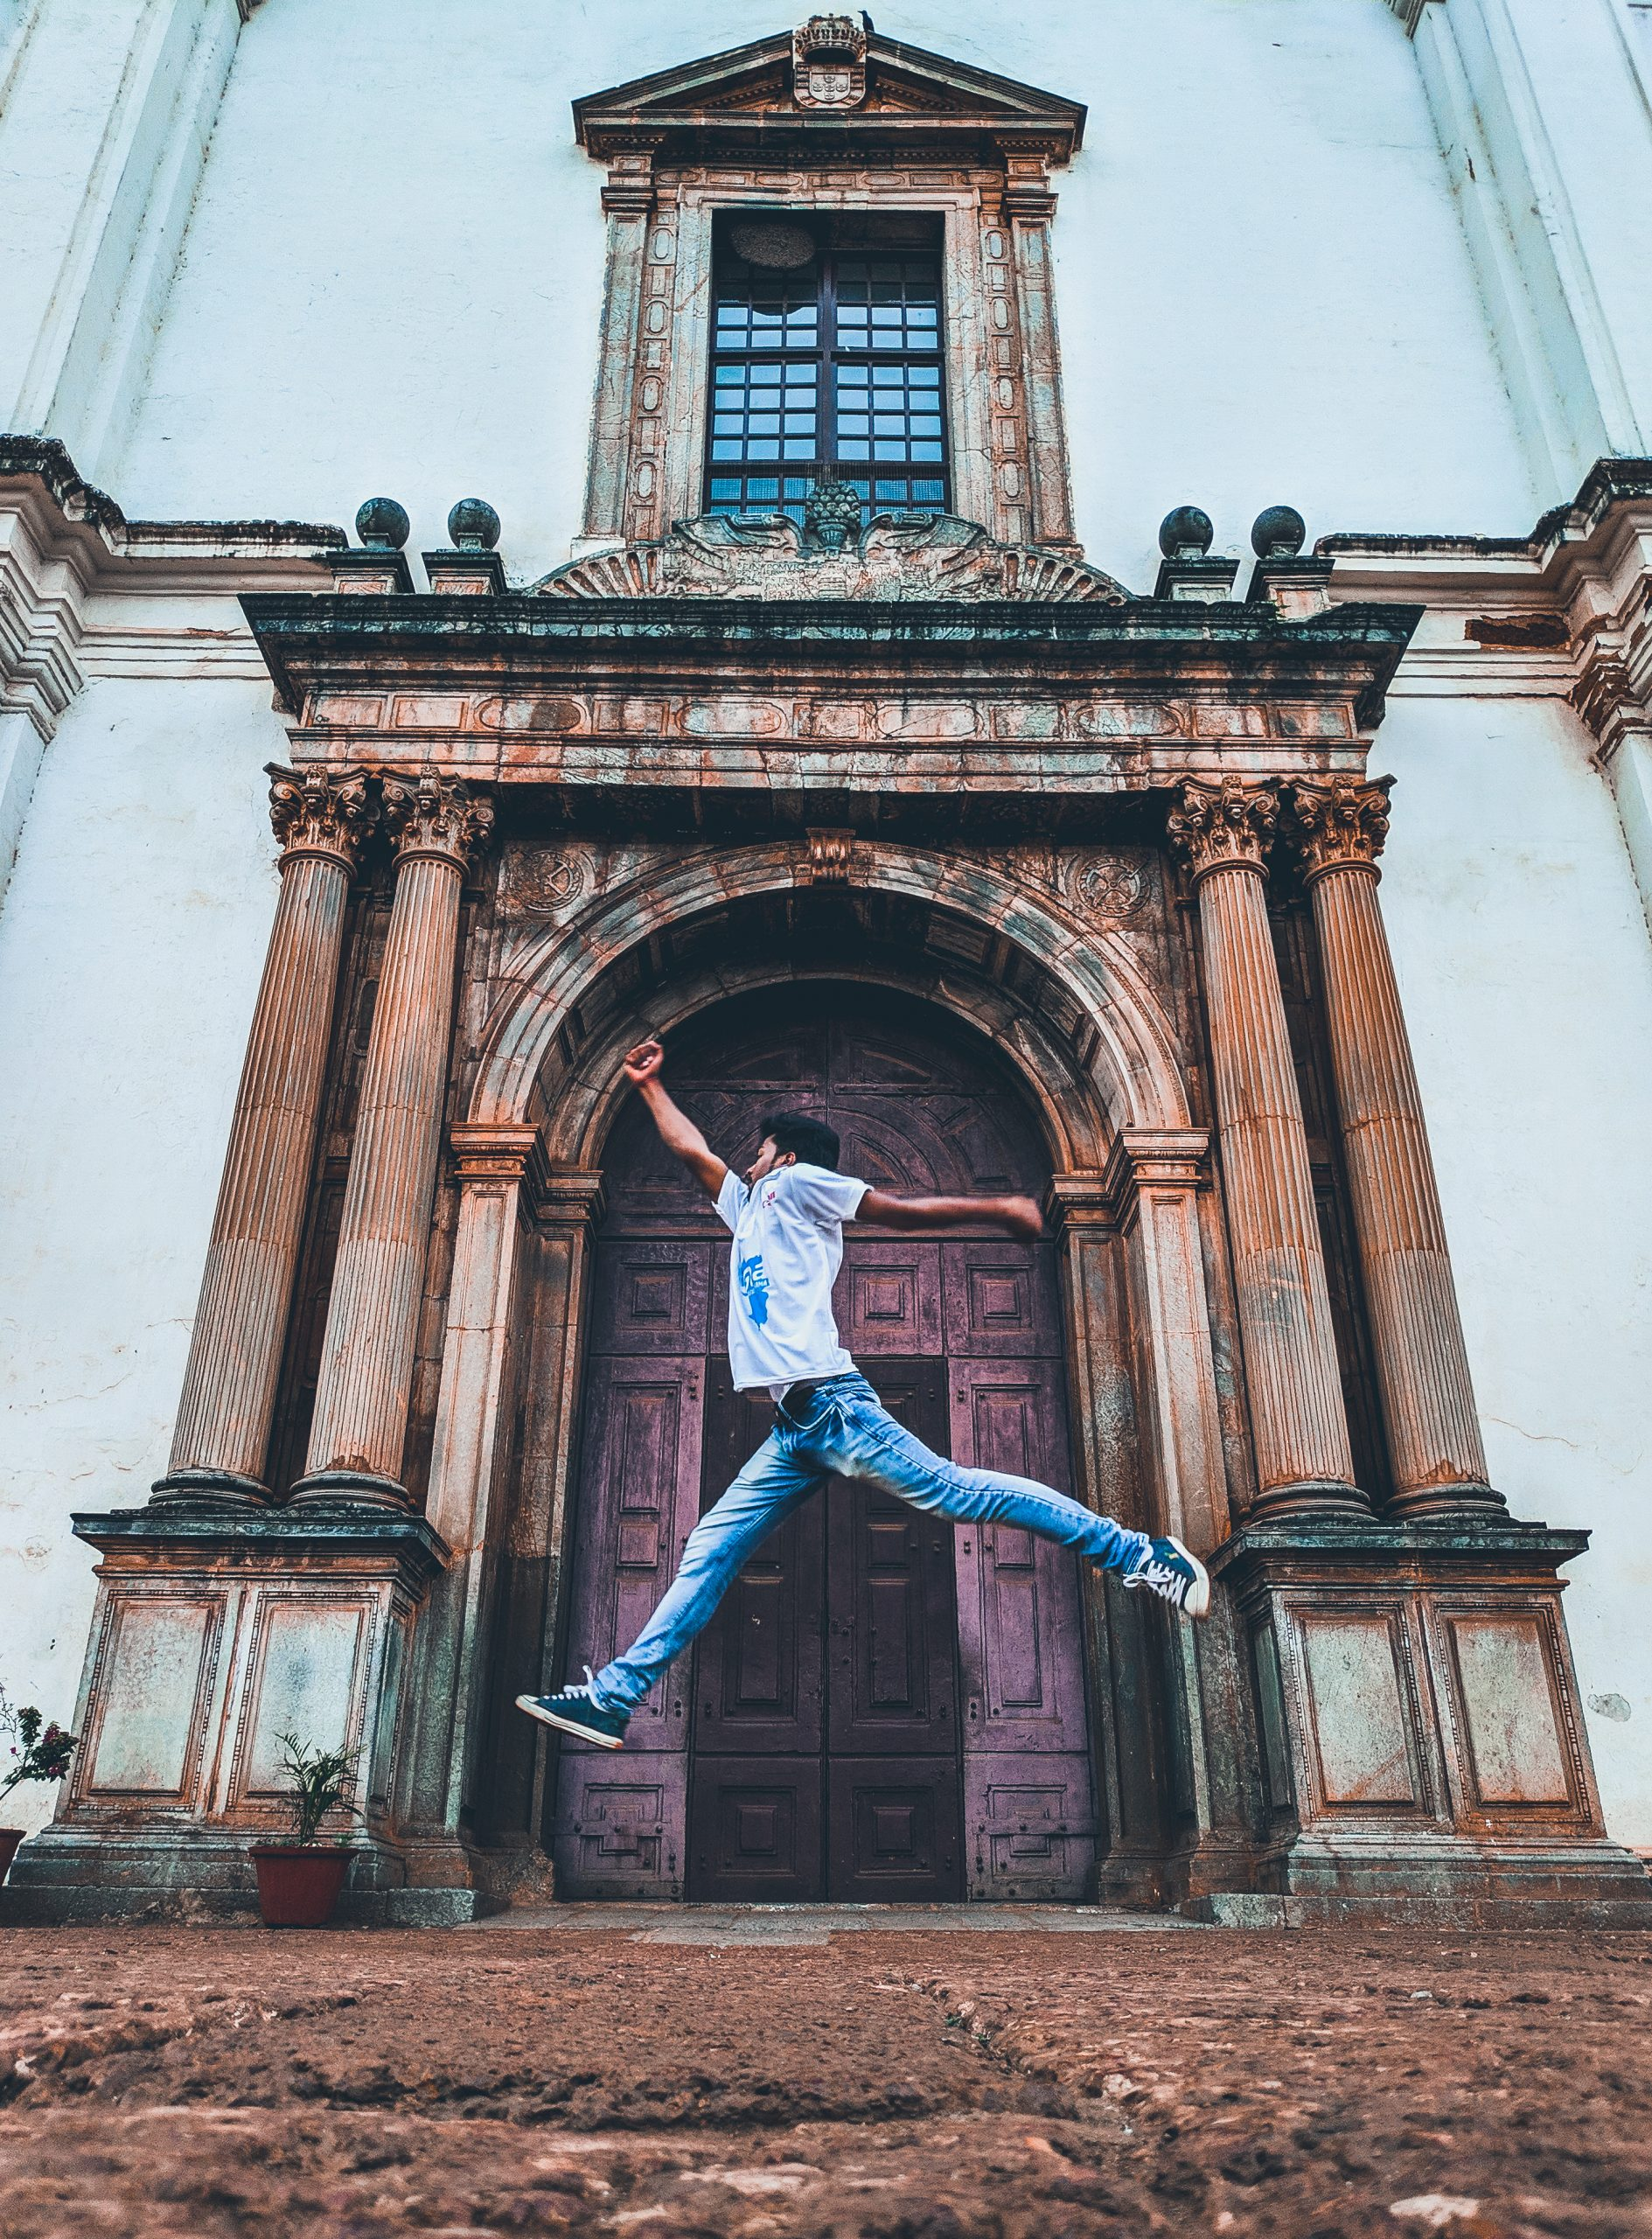 Man Jump Shot in Front of Se Cathedral in India